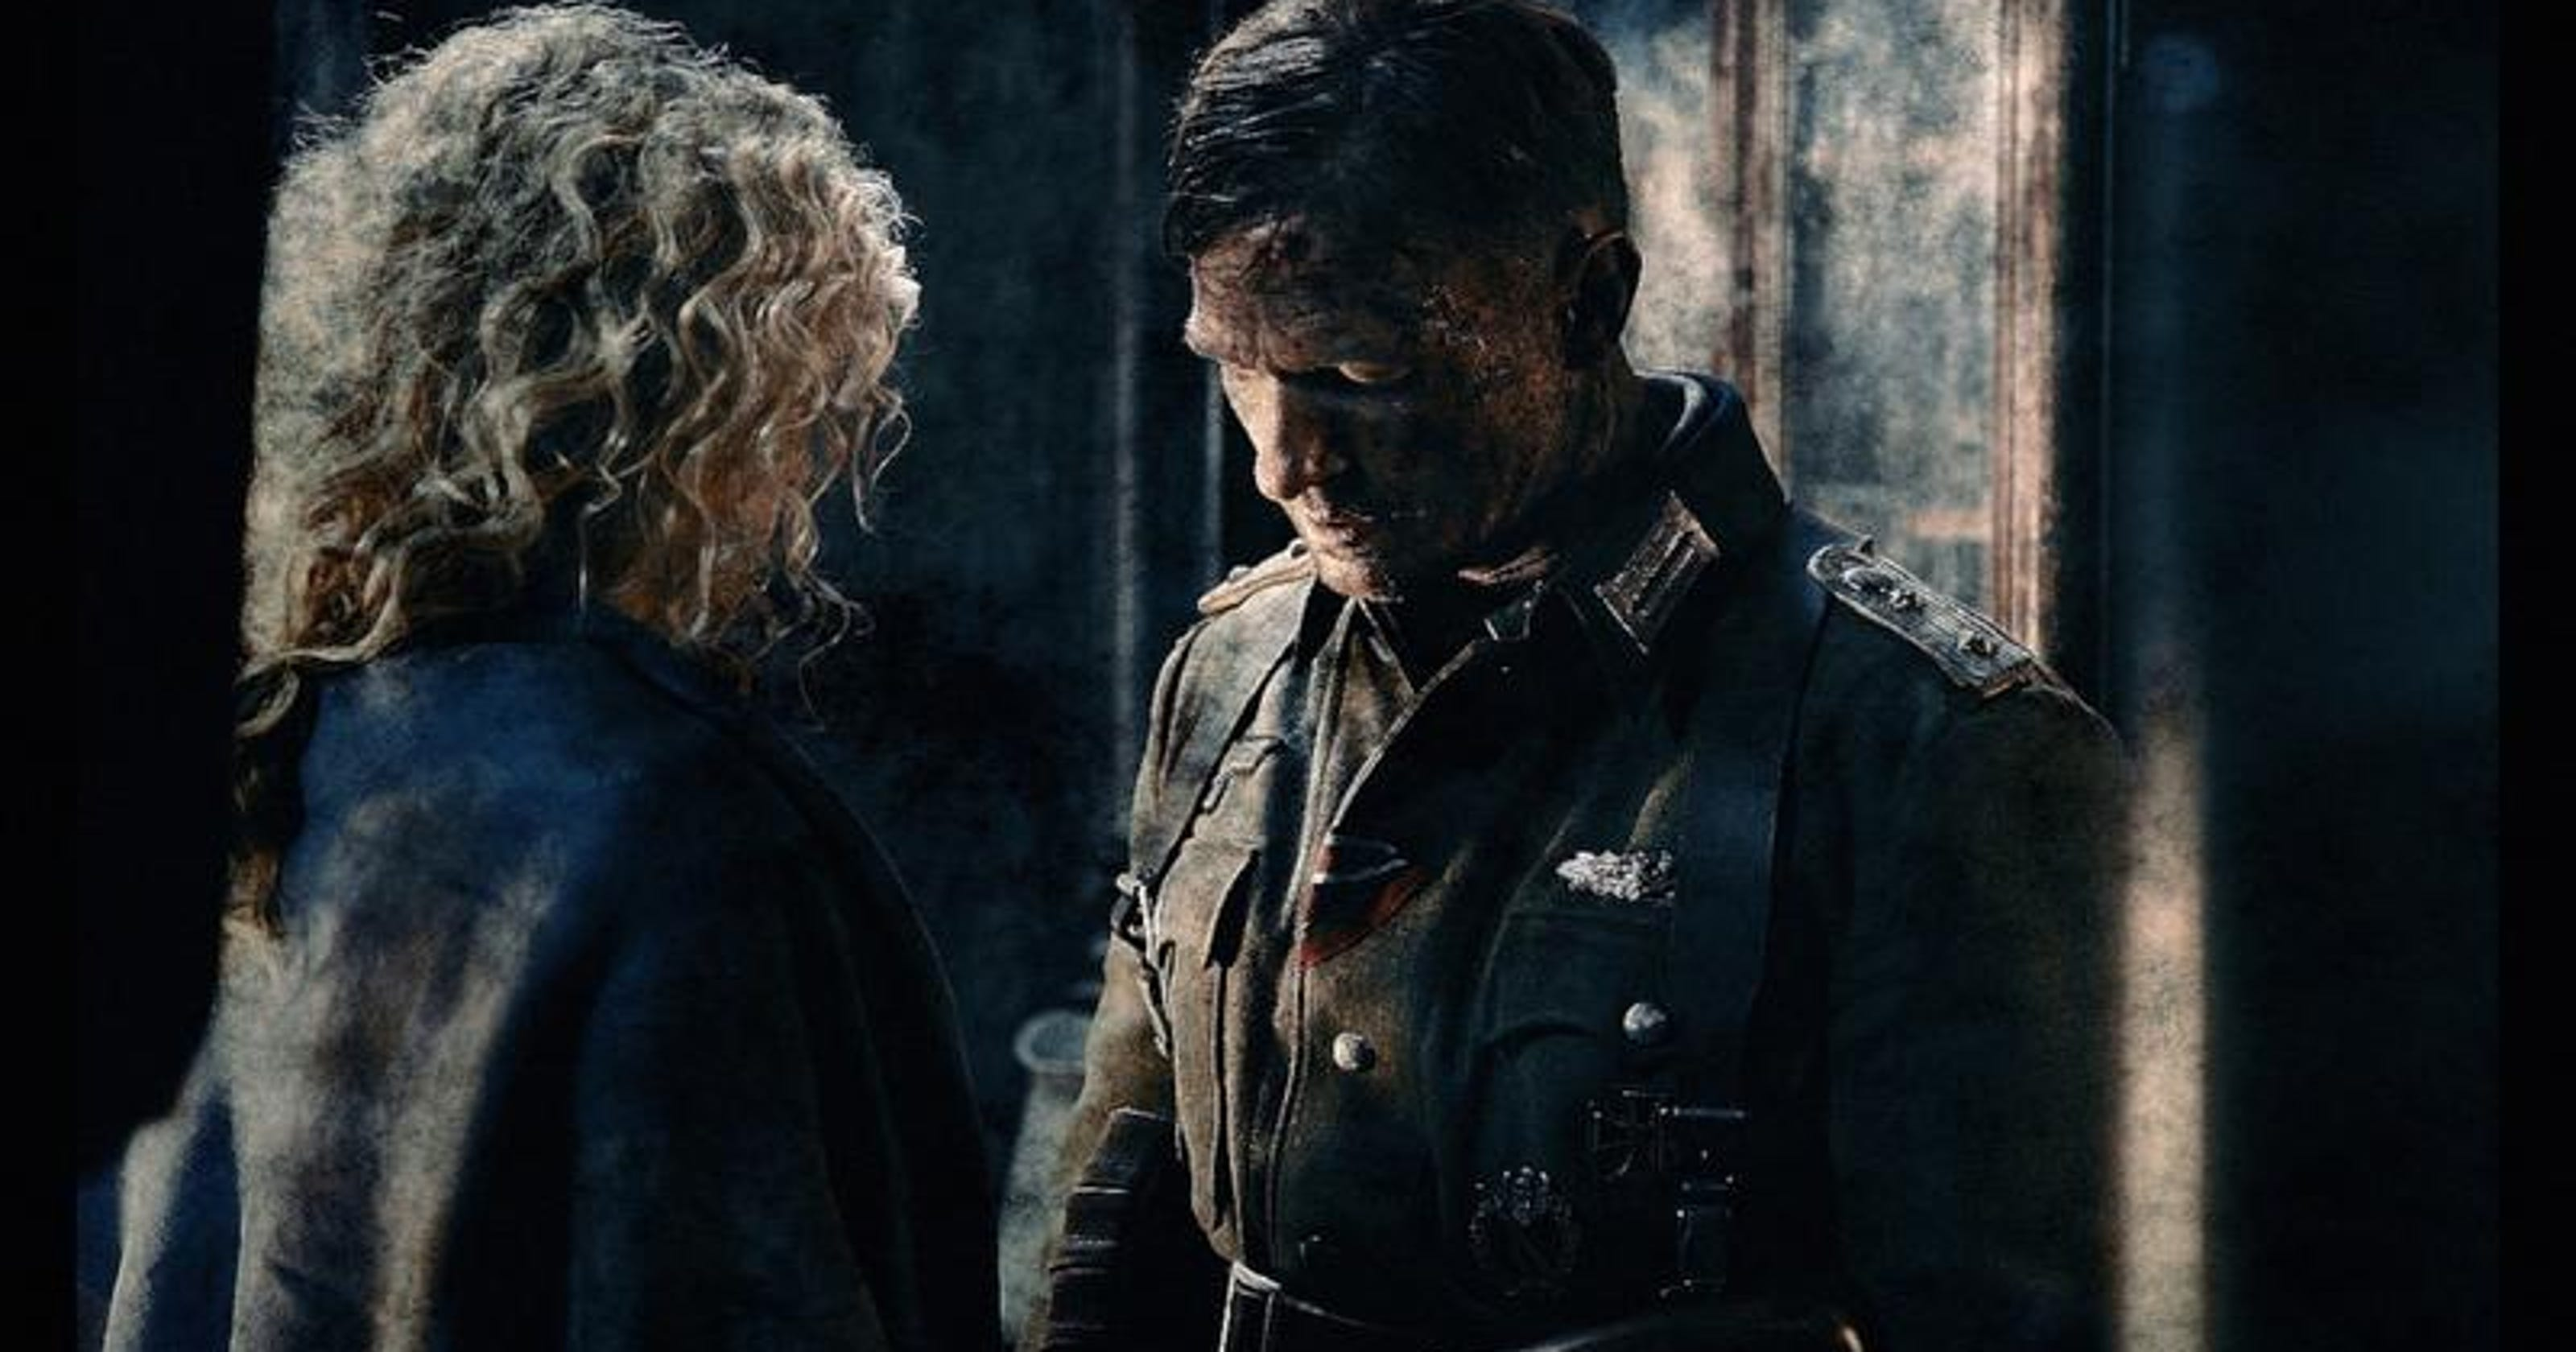 Movie review: 'Stalingrad' gives epic battle blockbuster treatment